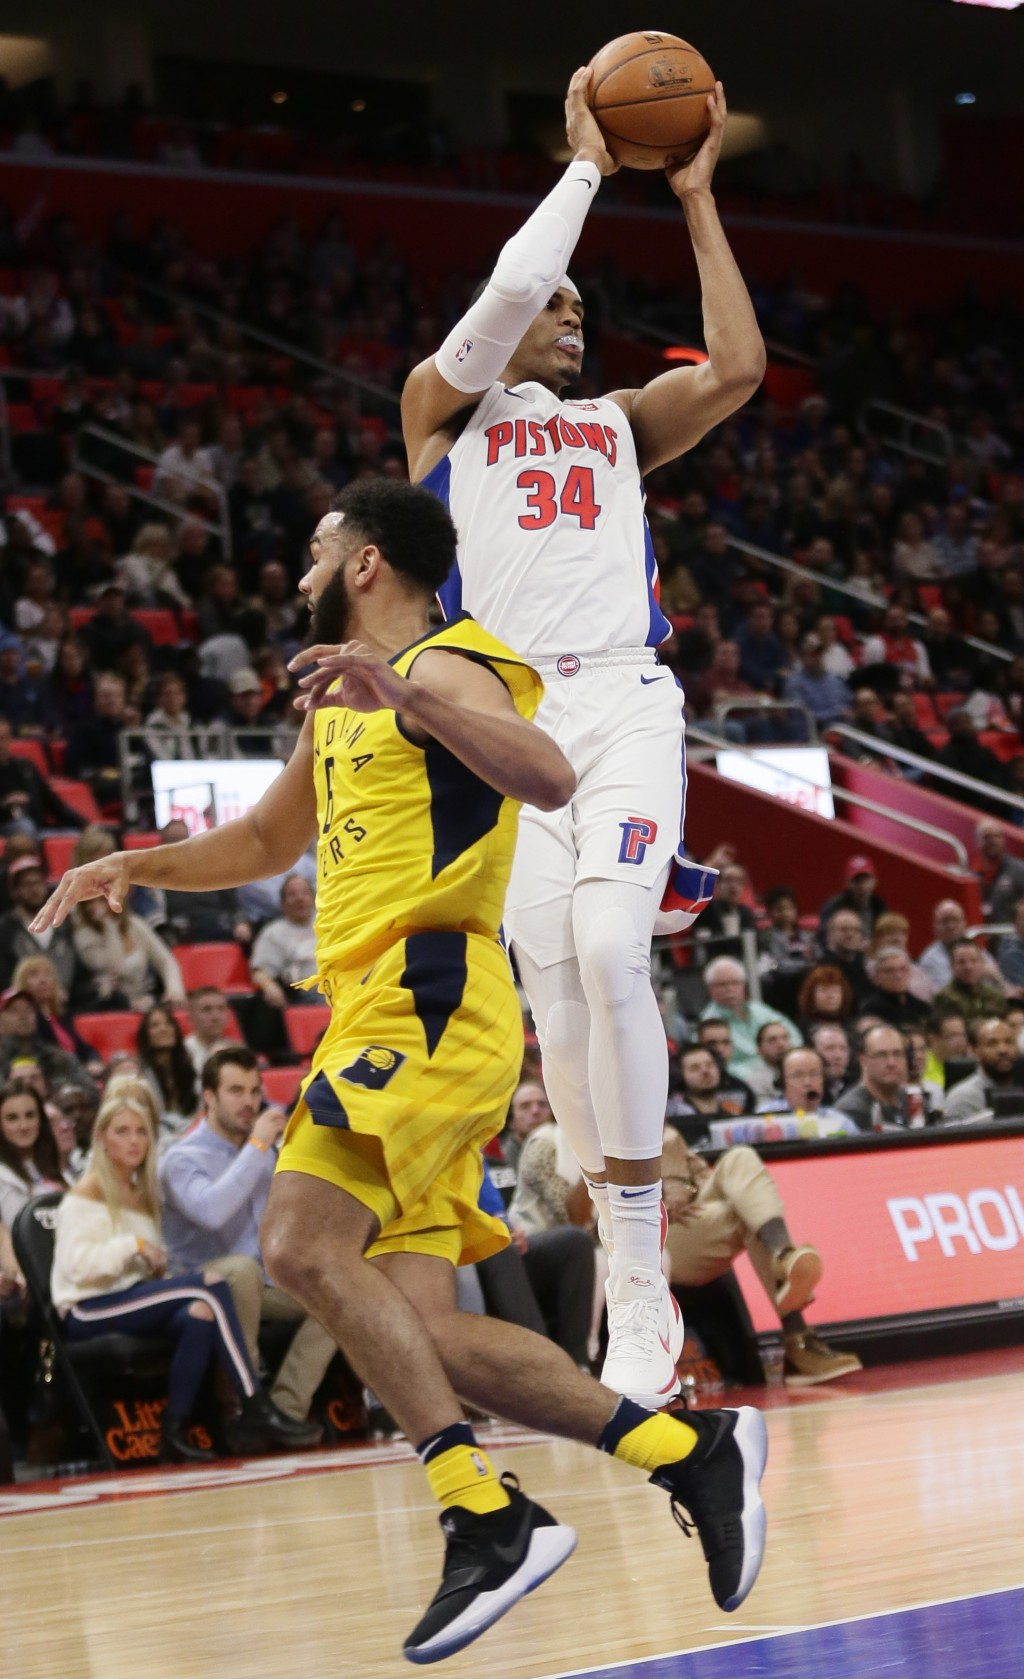 Detroit Pistons forward Tobias Harris (34) passes the ball against Indiana Pacers guard Cory Joseph during the first half of an NBA basketball game Tu...